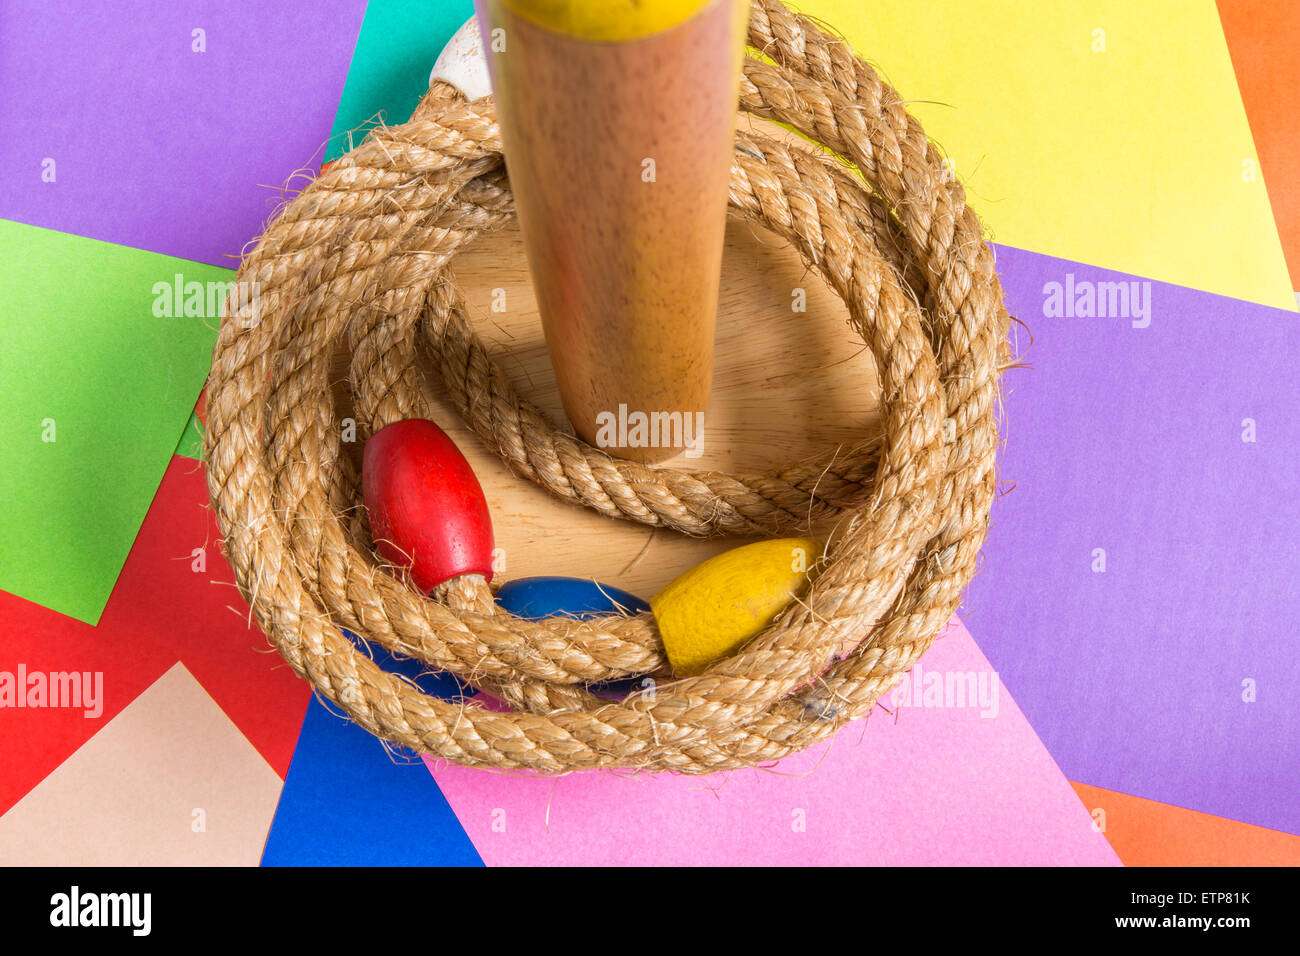 Ring toss game is a child's favorite toy. - Stock Image